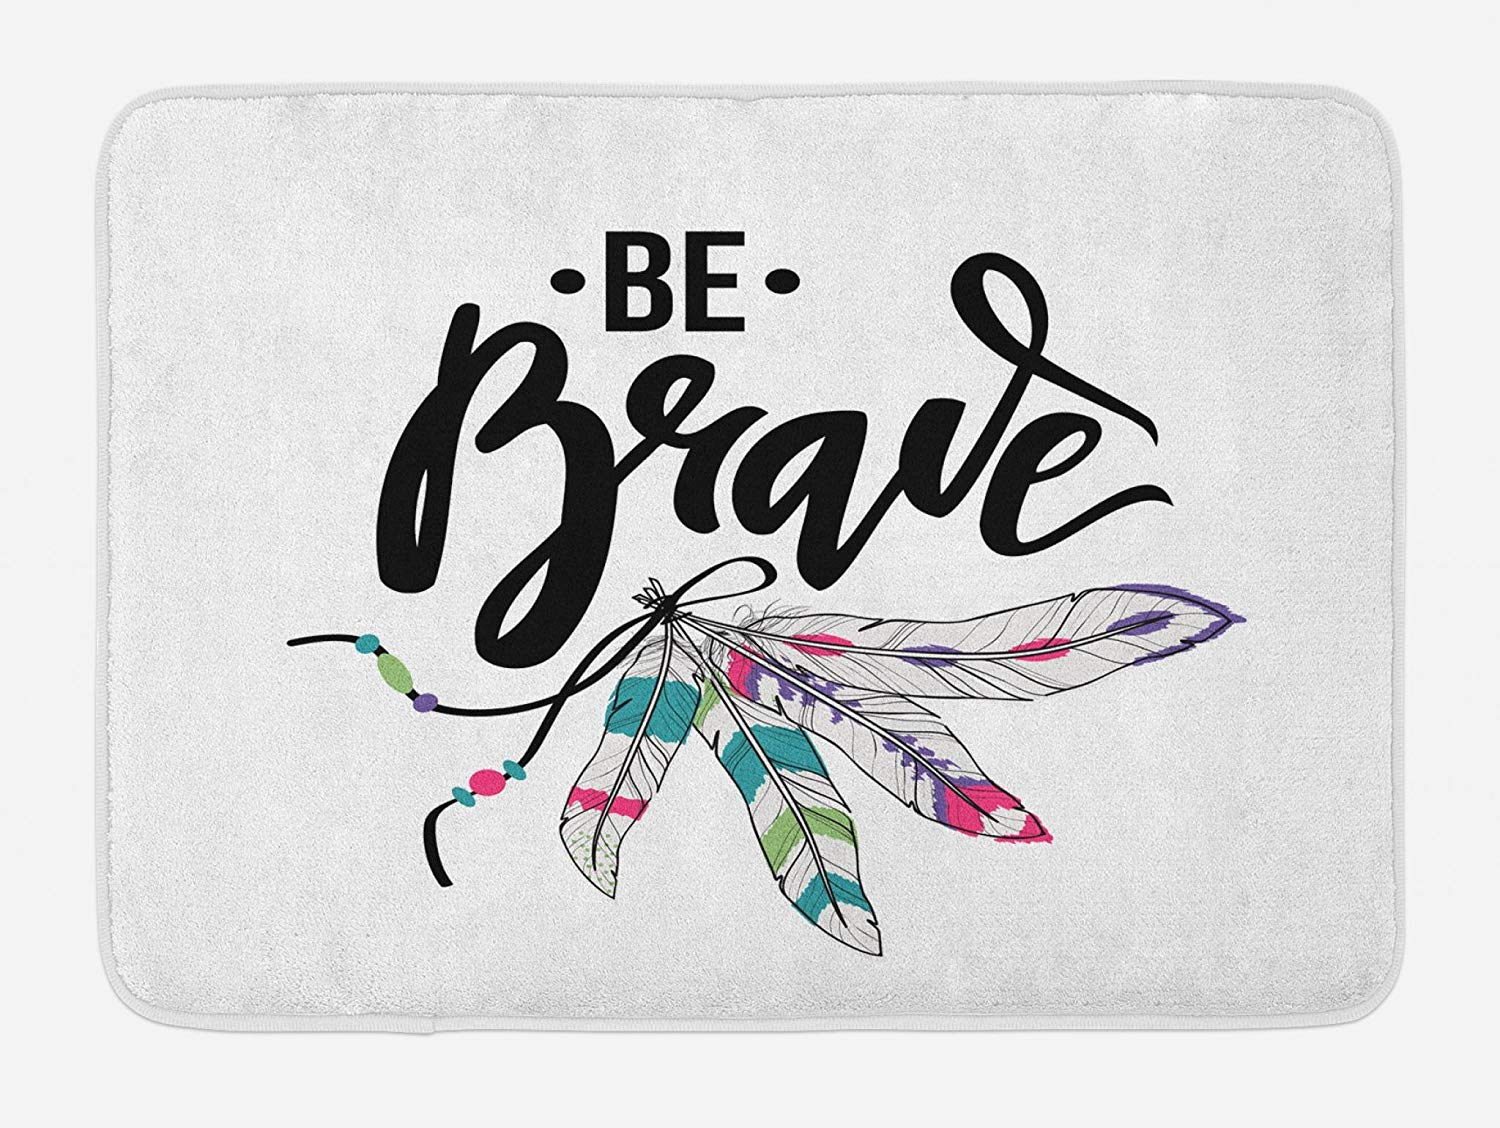 Lunarable Be Brave Bath Mat, Tribal Feathers with Be Brave Saying Bohemian Quote Spiritual Motivation Theme, Plush Bathroom Decor Mat with Non Slip Backing, 29.5 W X 17.5 W Inches, Multicolor